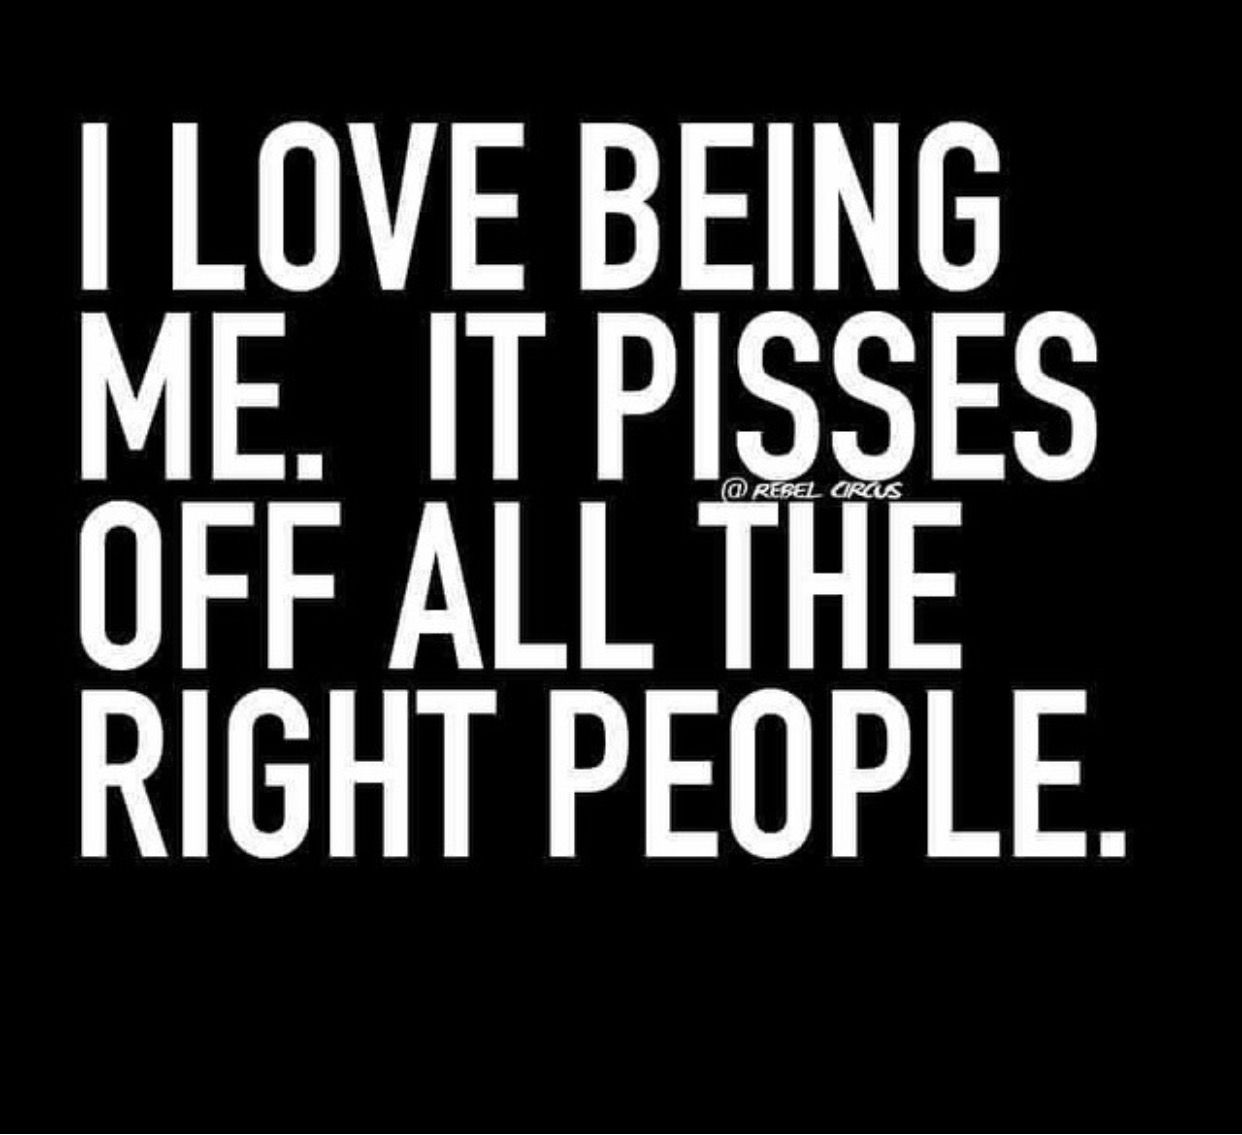 Quotes About Being Pissed: Pin By Michelle Lynn Green On My Life